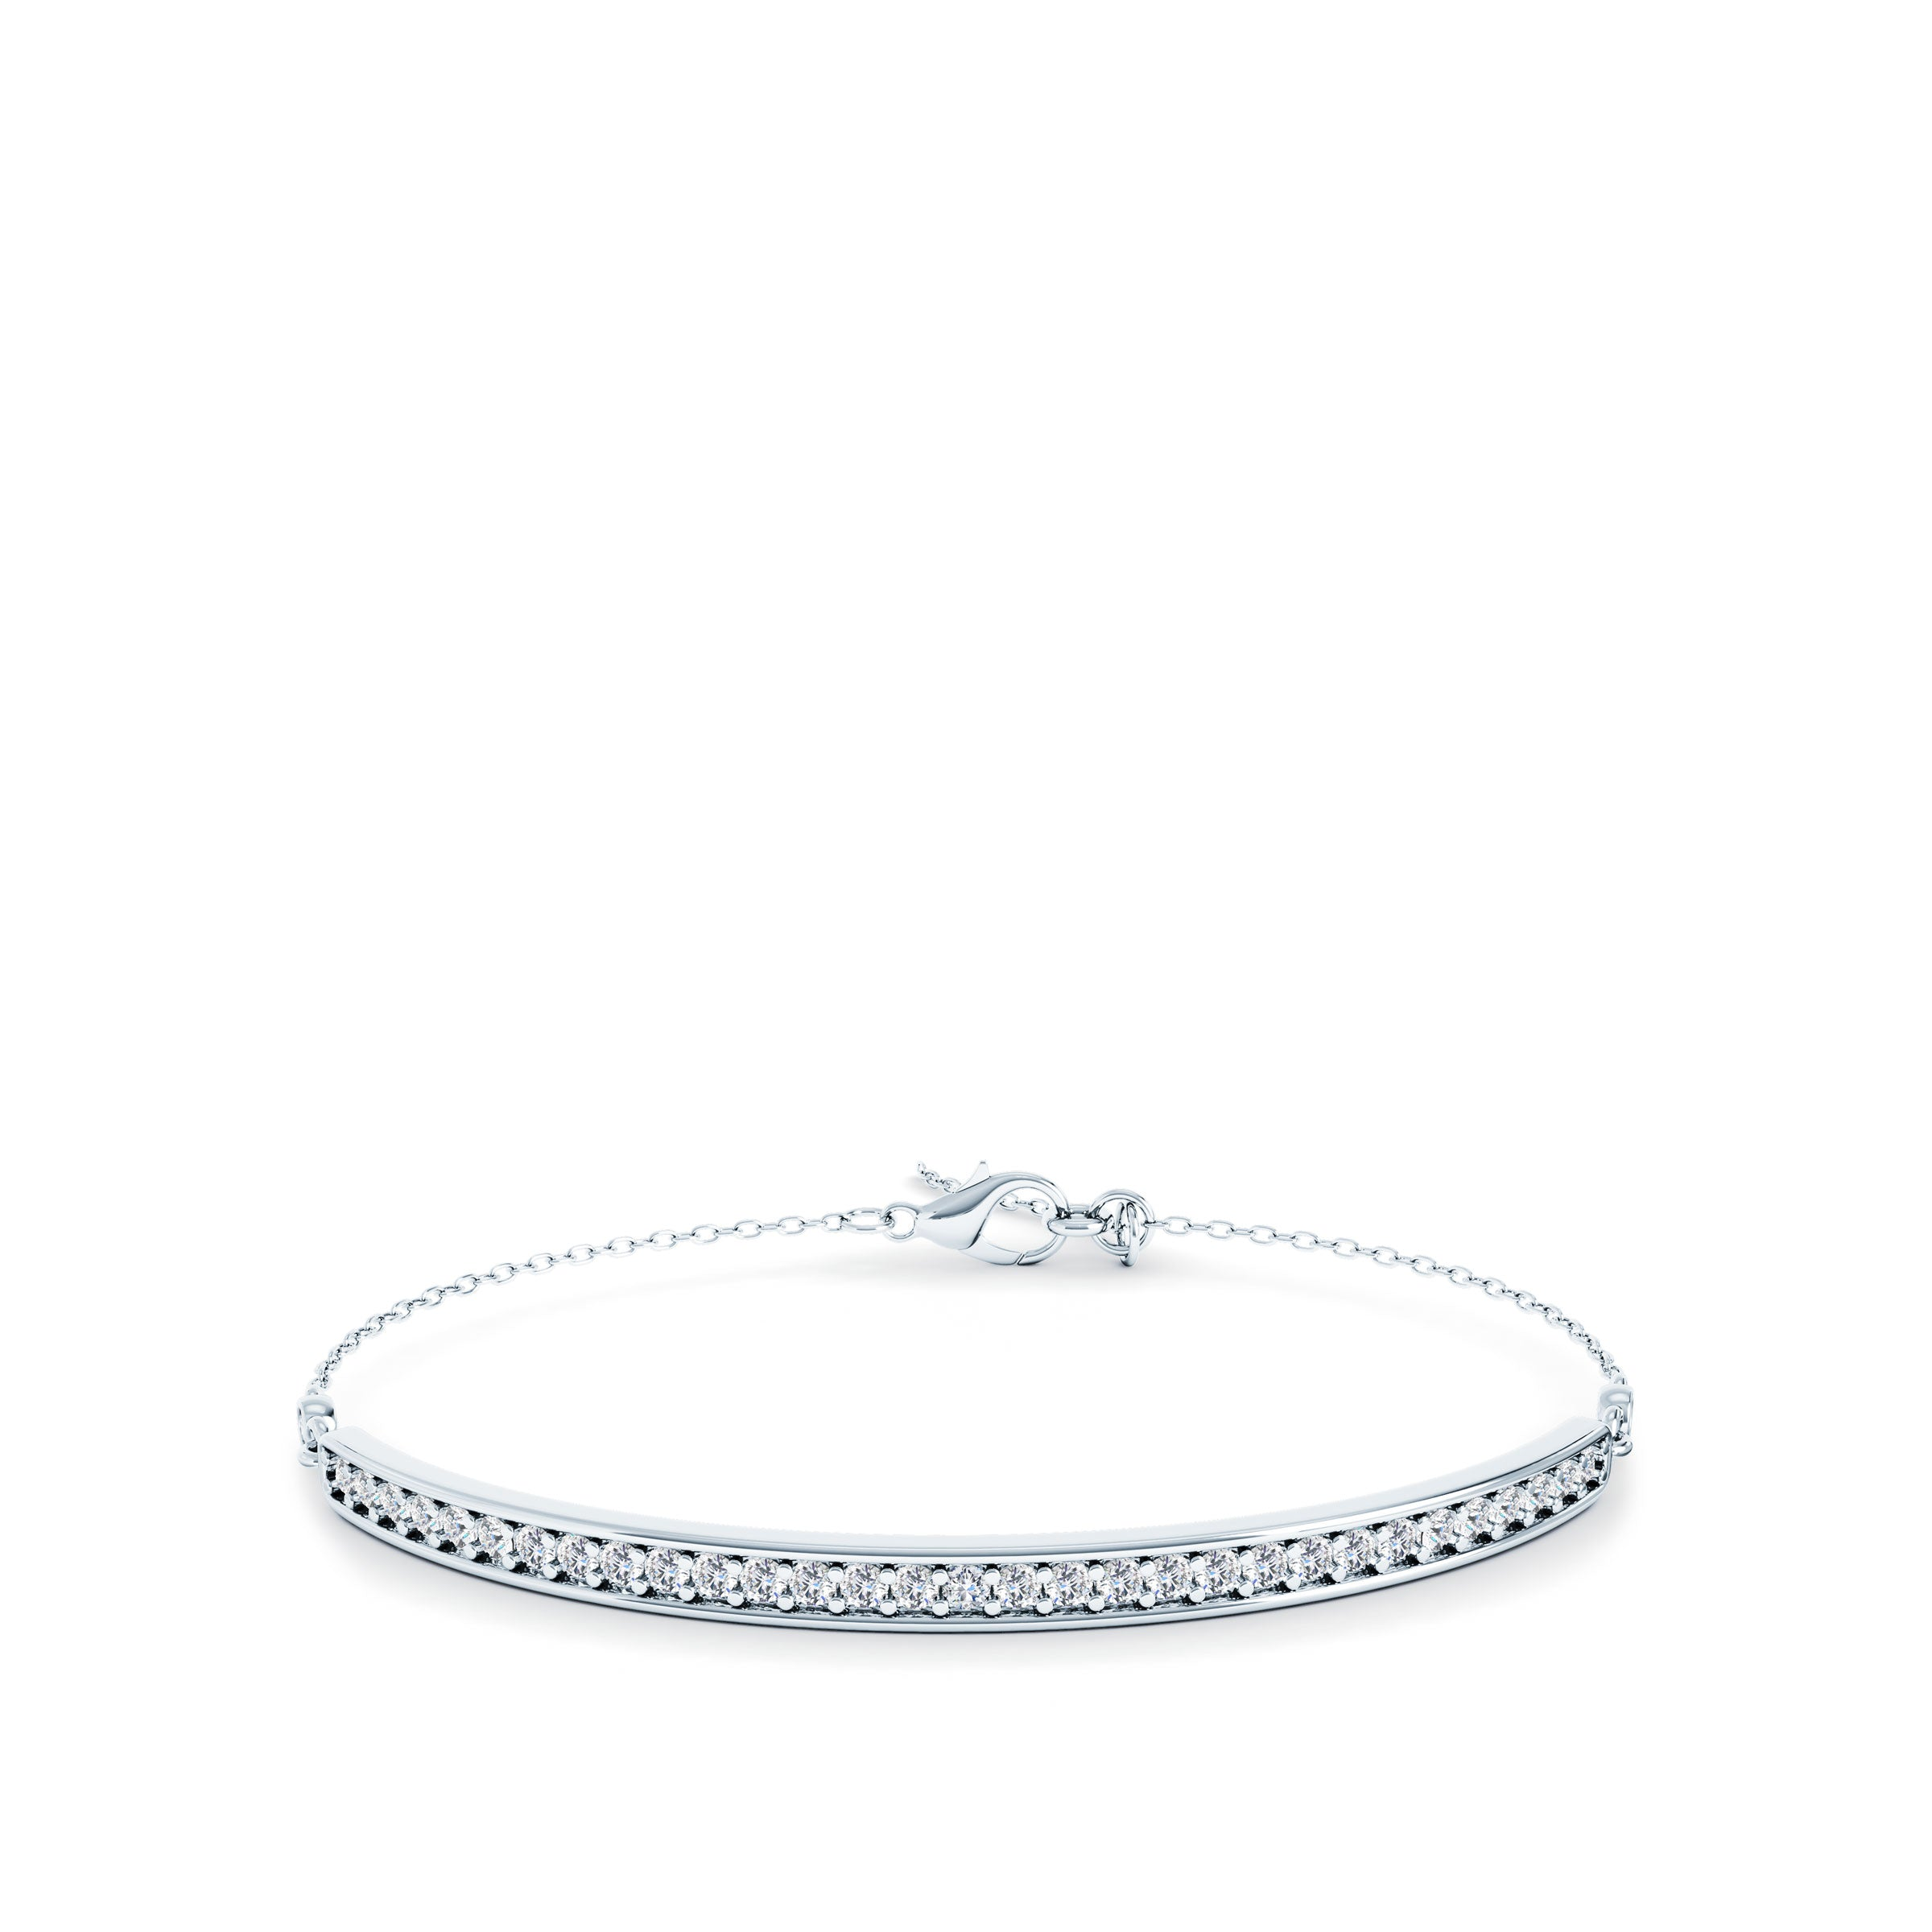 1/2 Carat Diamond Bar Bracelet